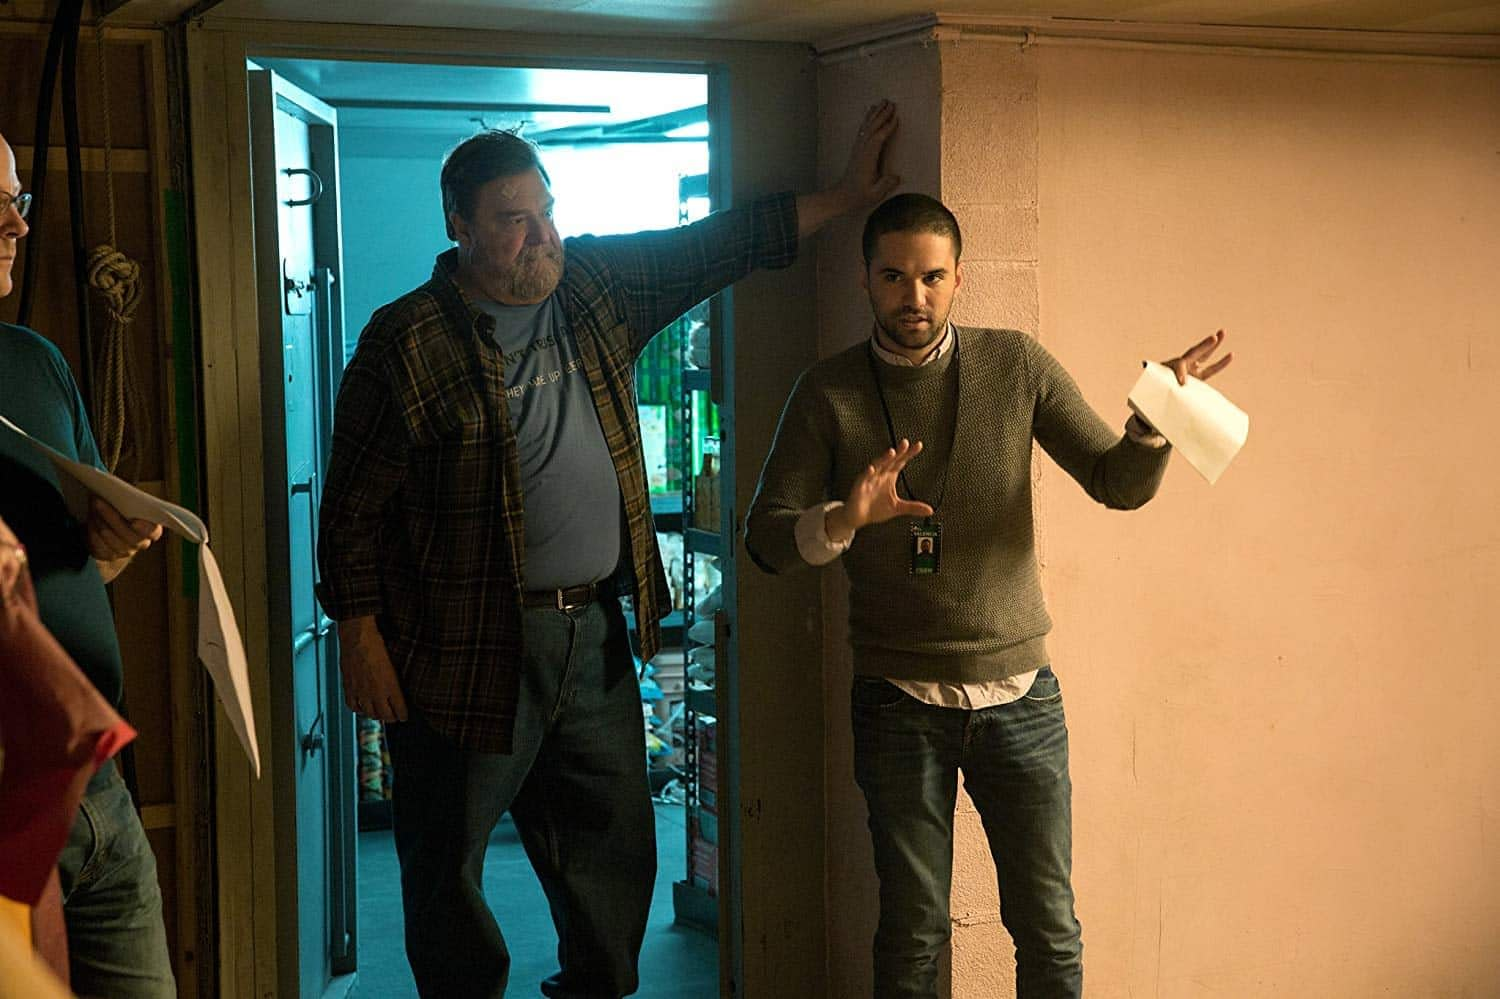 Dan Trachtenberg, Director of 10 Cloverfield Lane, to Direct the Uncharted Movie